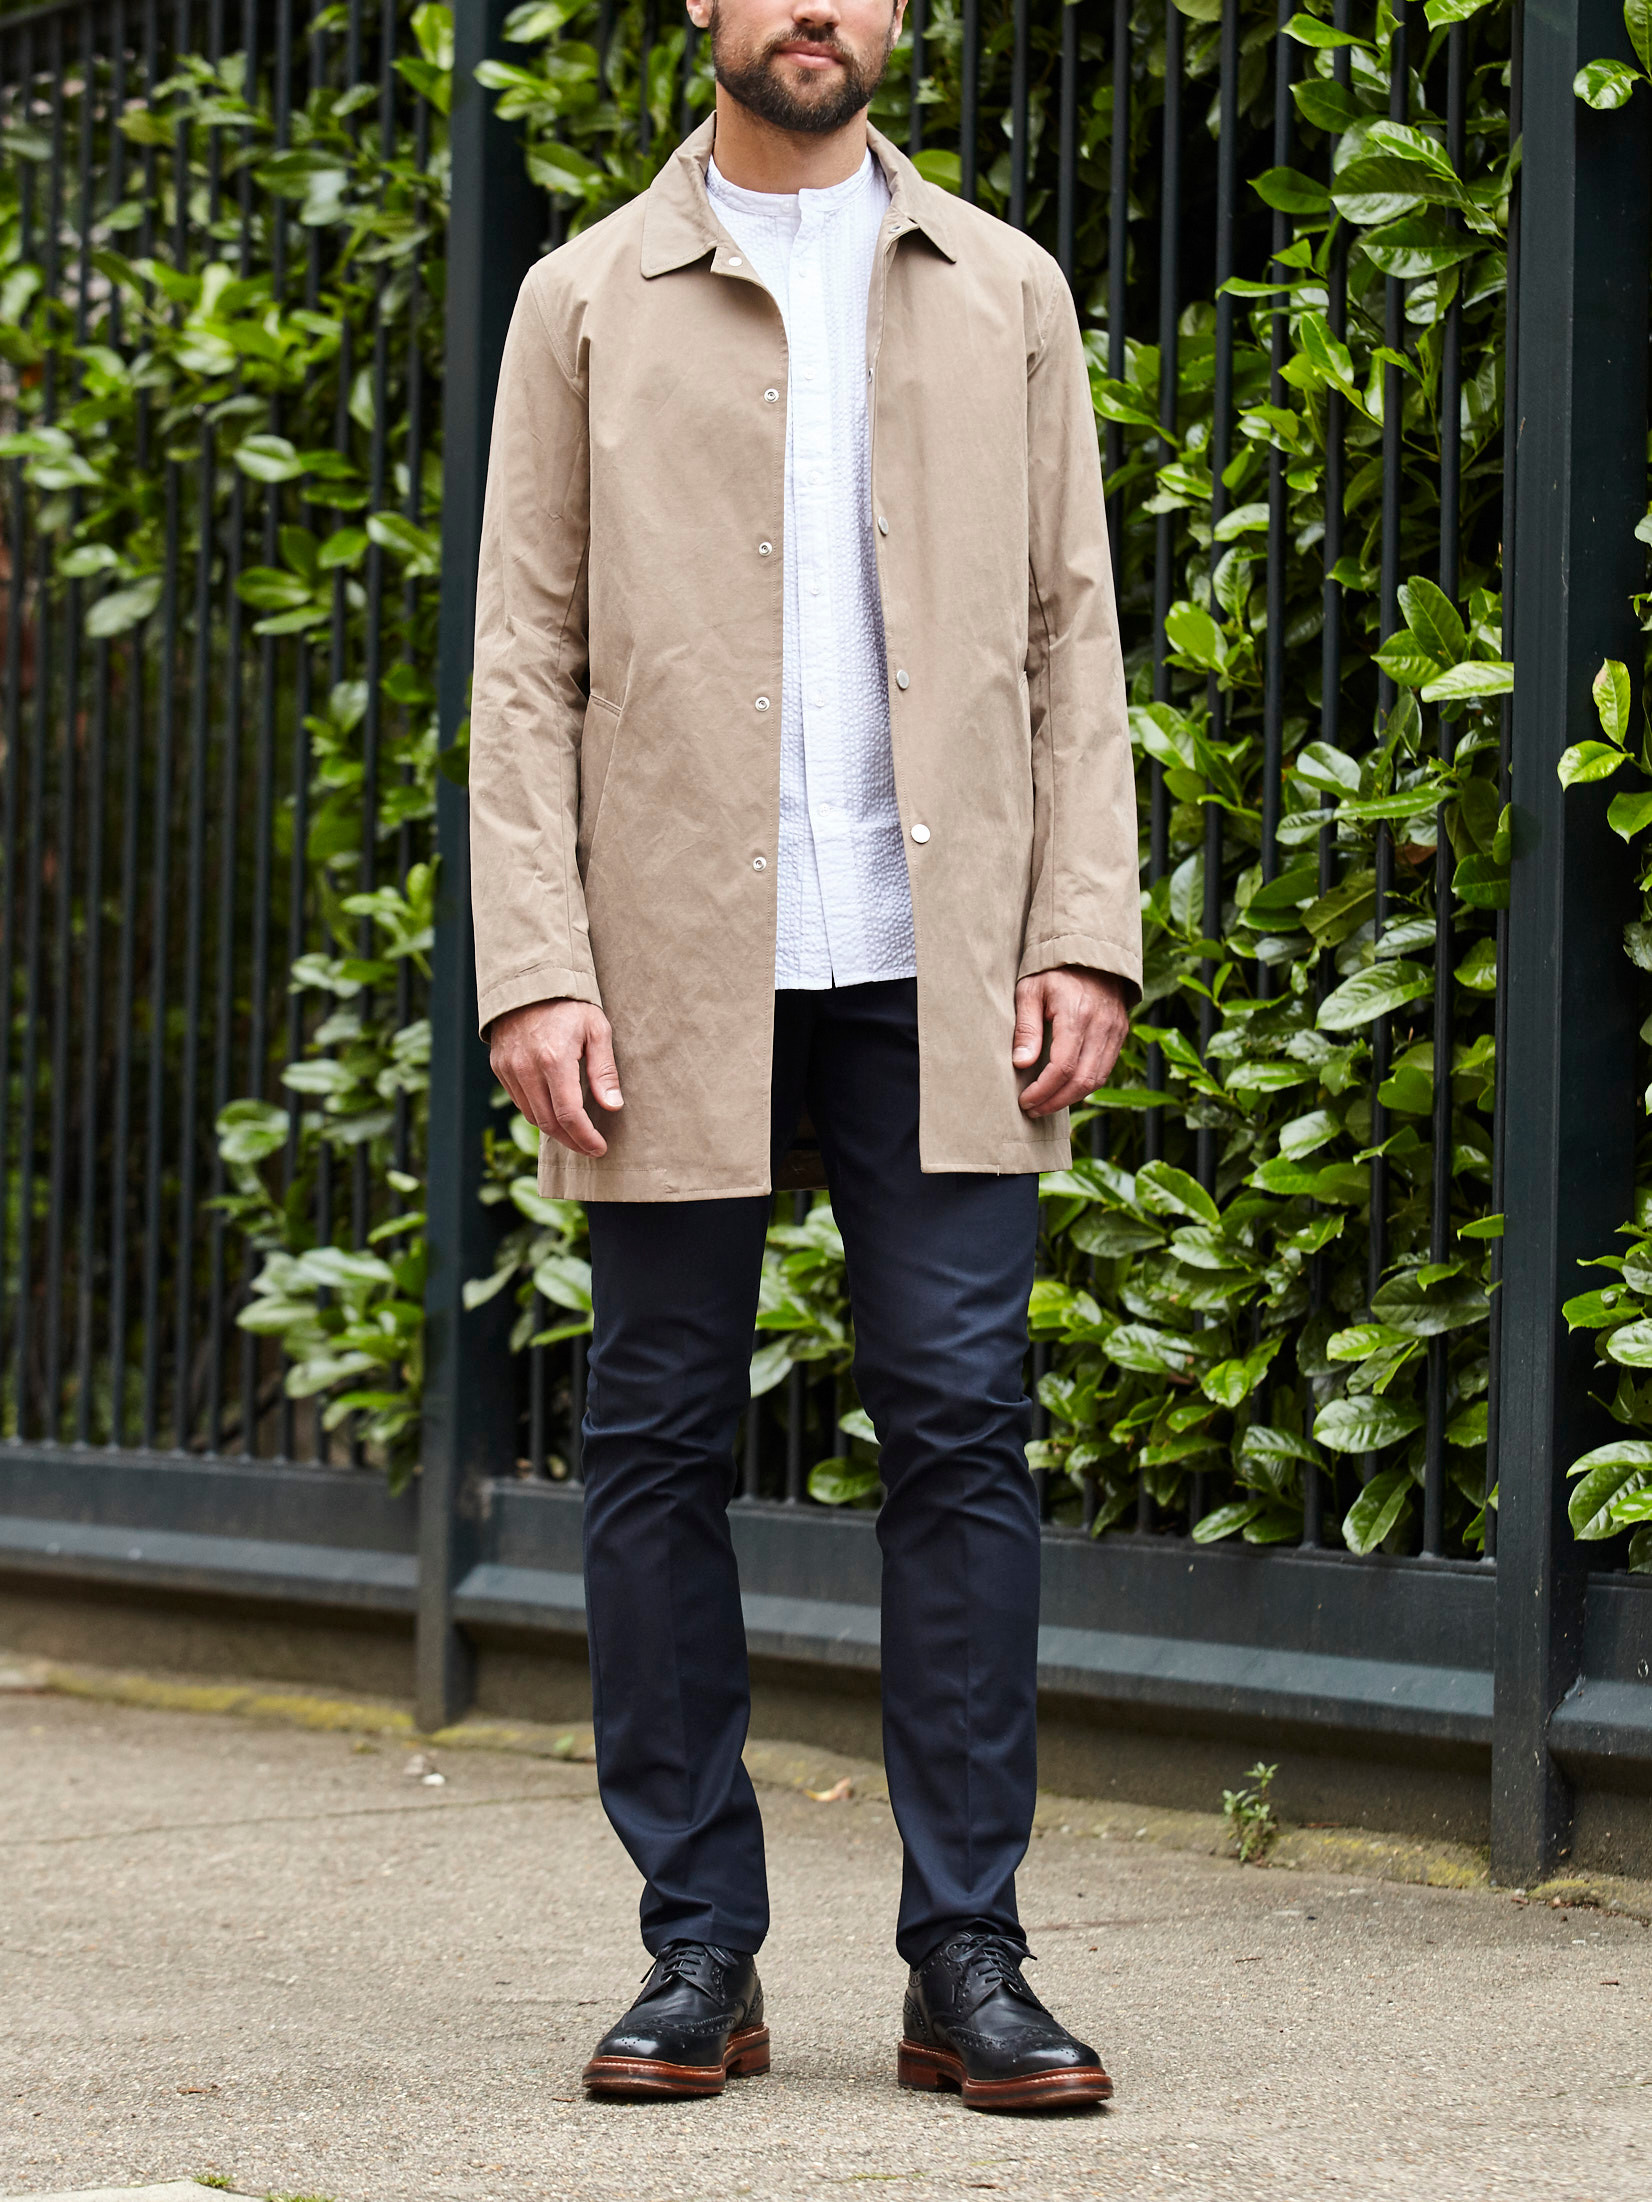 Men's outfit idea for 2021 with stone trench coat, white casual shirt, navy formal trousers, black brogues. Suitable for spring, summer and autumn.